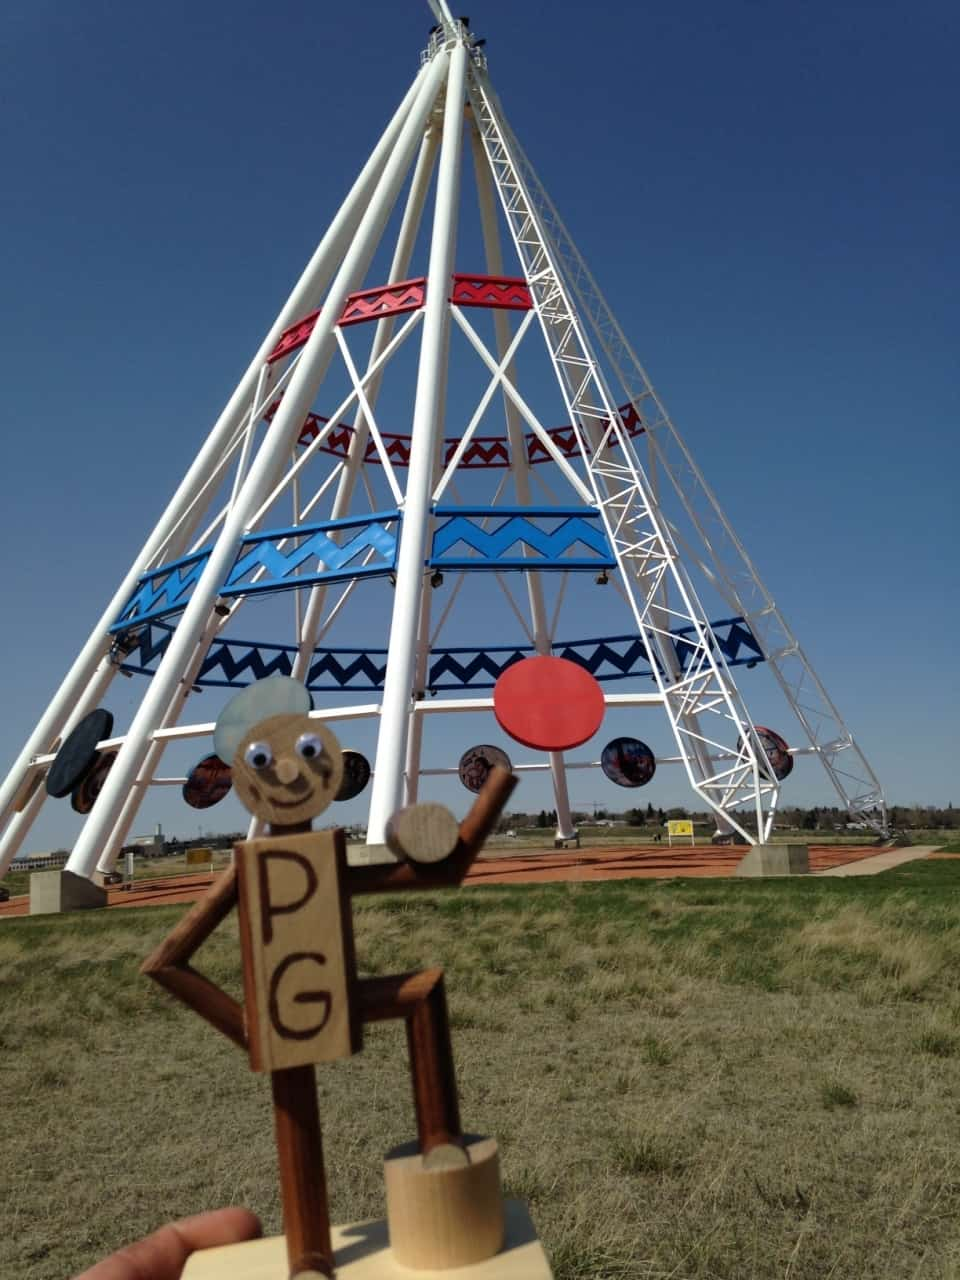 1d4ea9133273c93d1ad99753.jpg - Medicine Hat, AB - Across Canada in search of #BIGselfies trip 2014<br />The worlds largest teepee - also one of the worst for keeping out rain